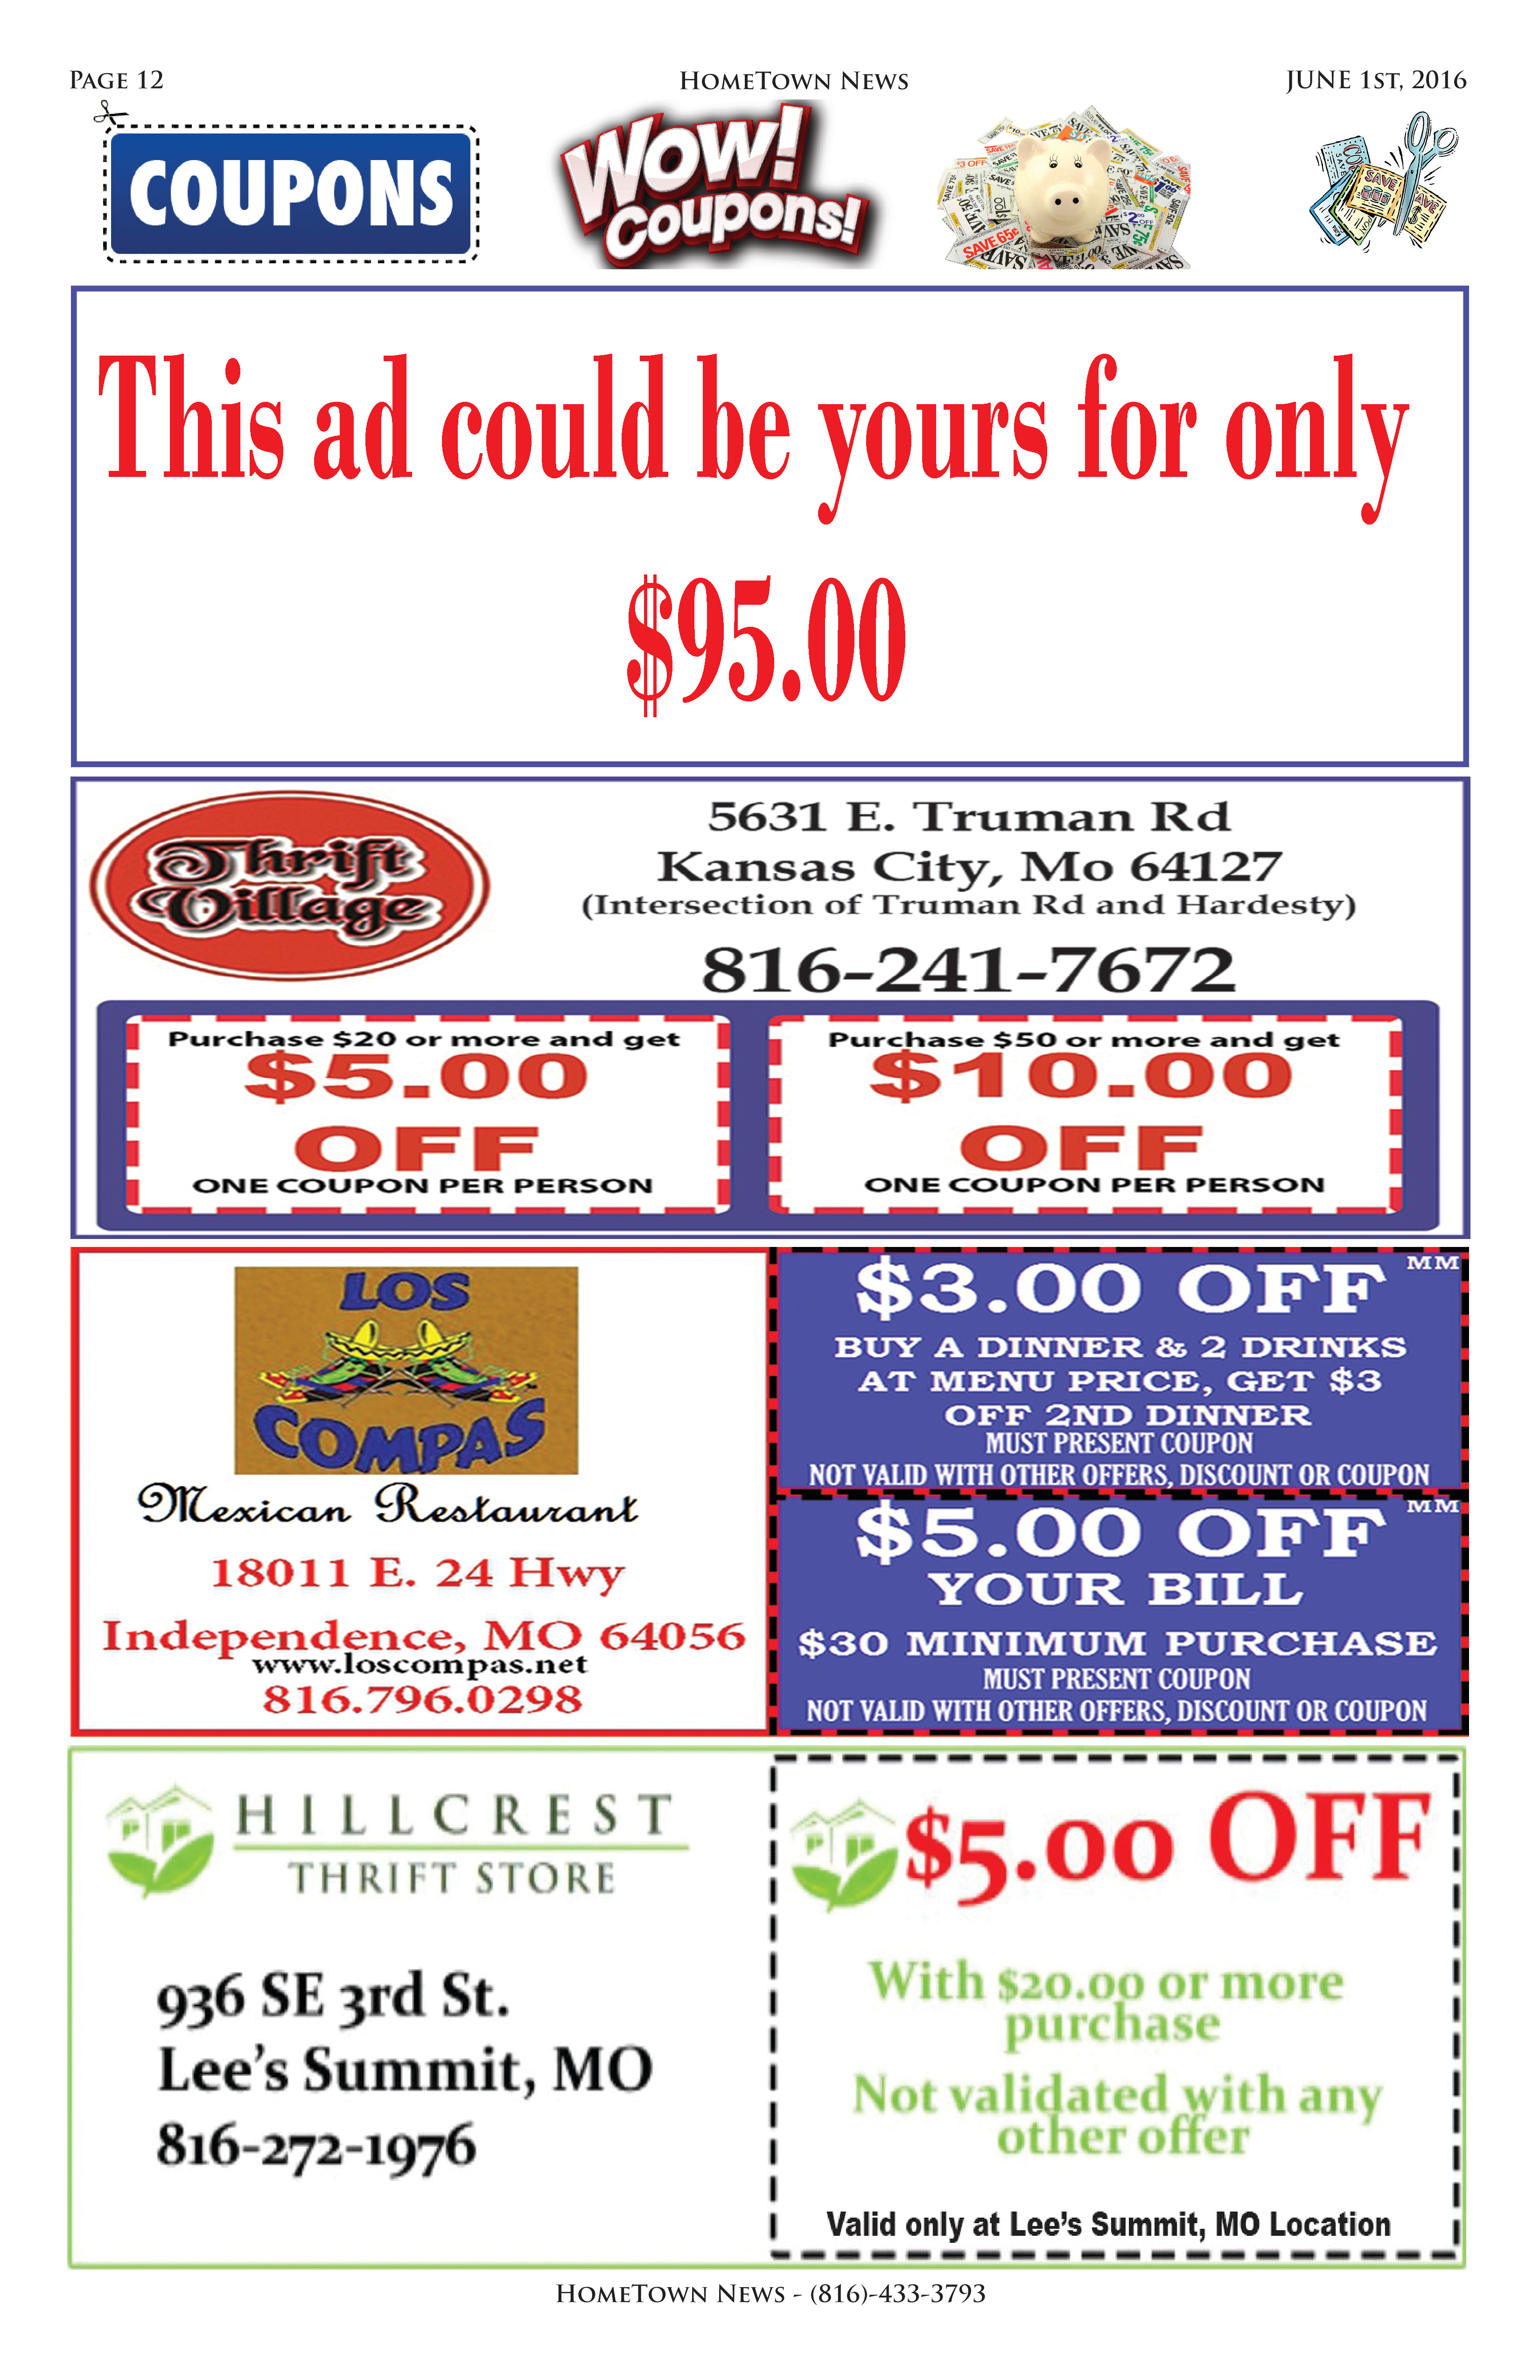 HTN11 - 12 - Coupons